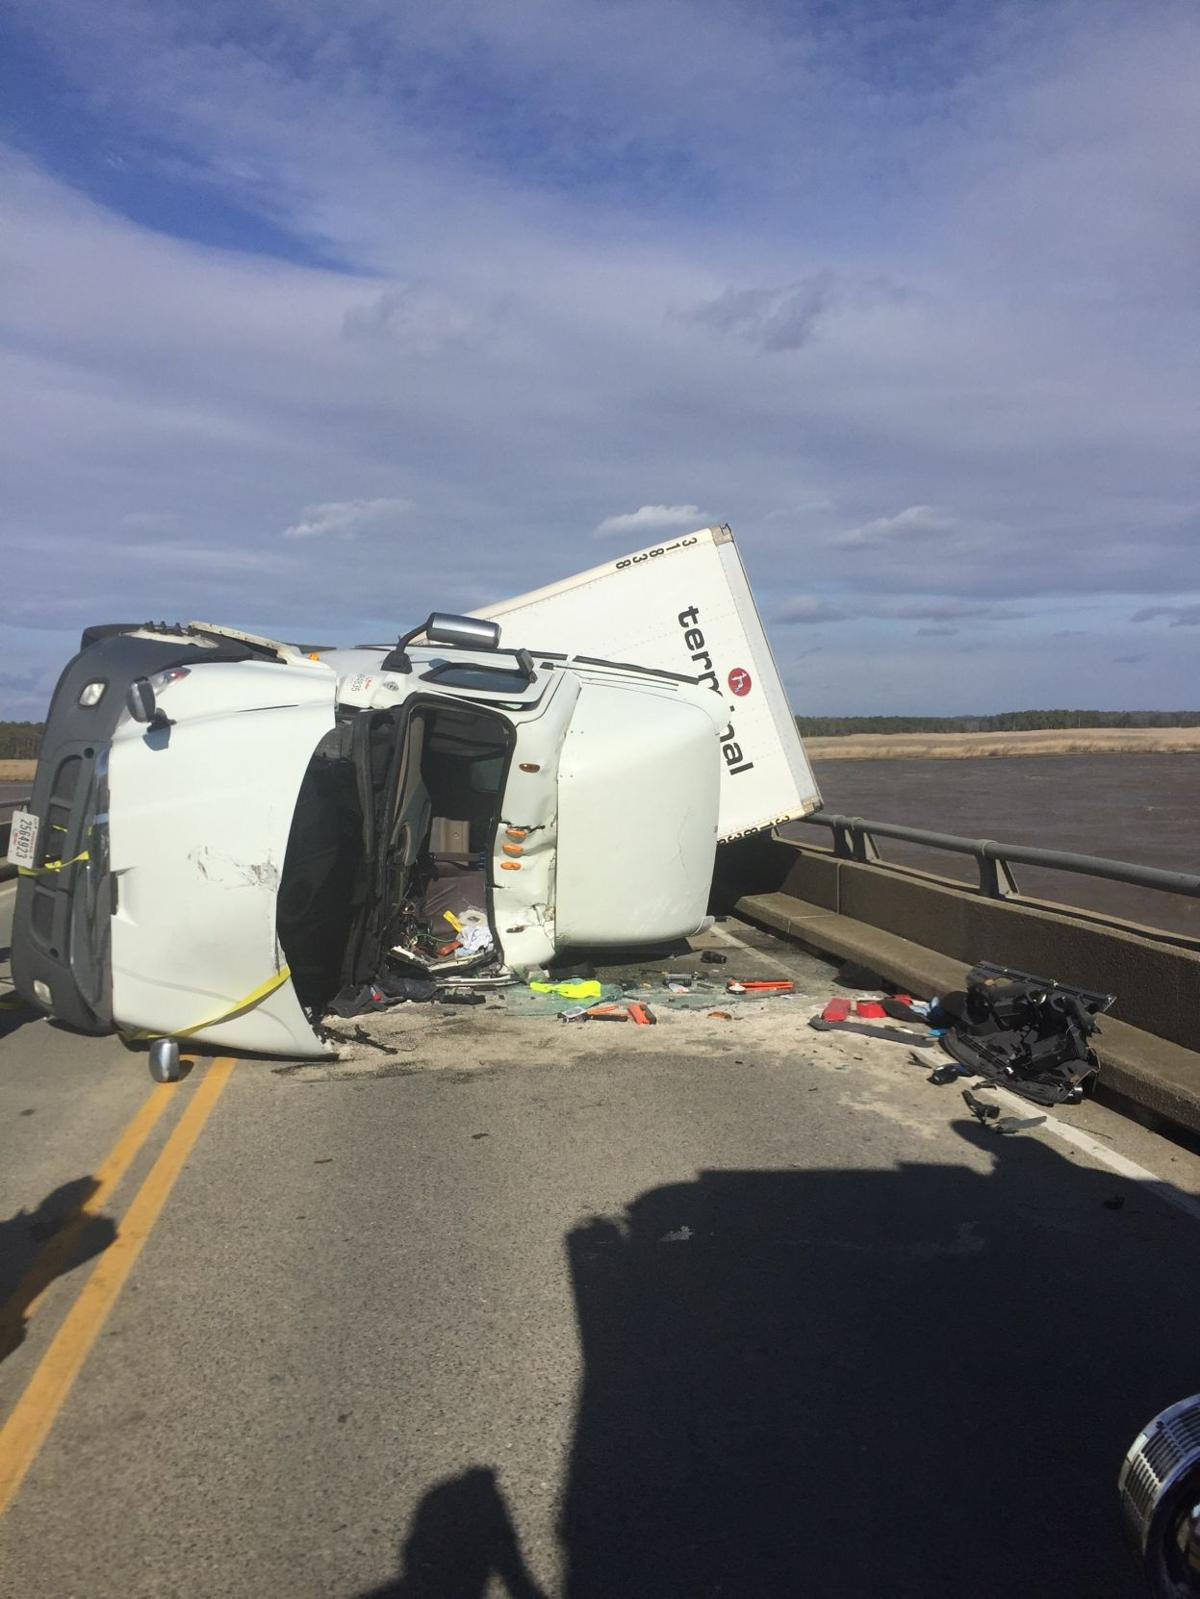 3 injured after wind gust blows tractor-trailer into path of